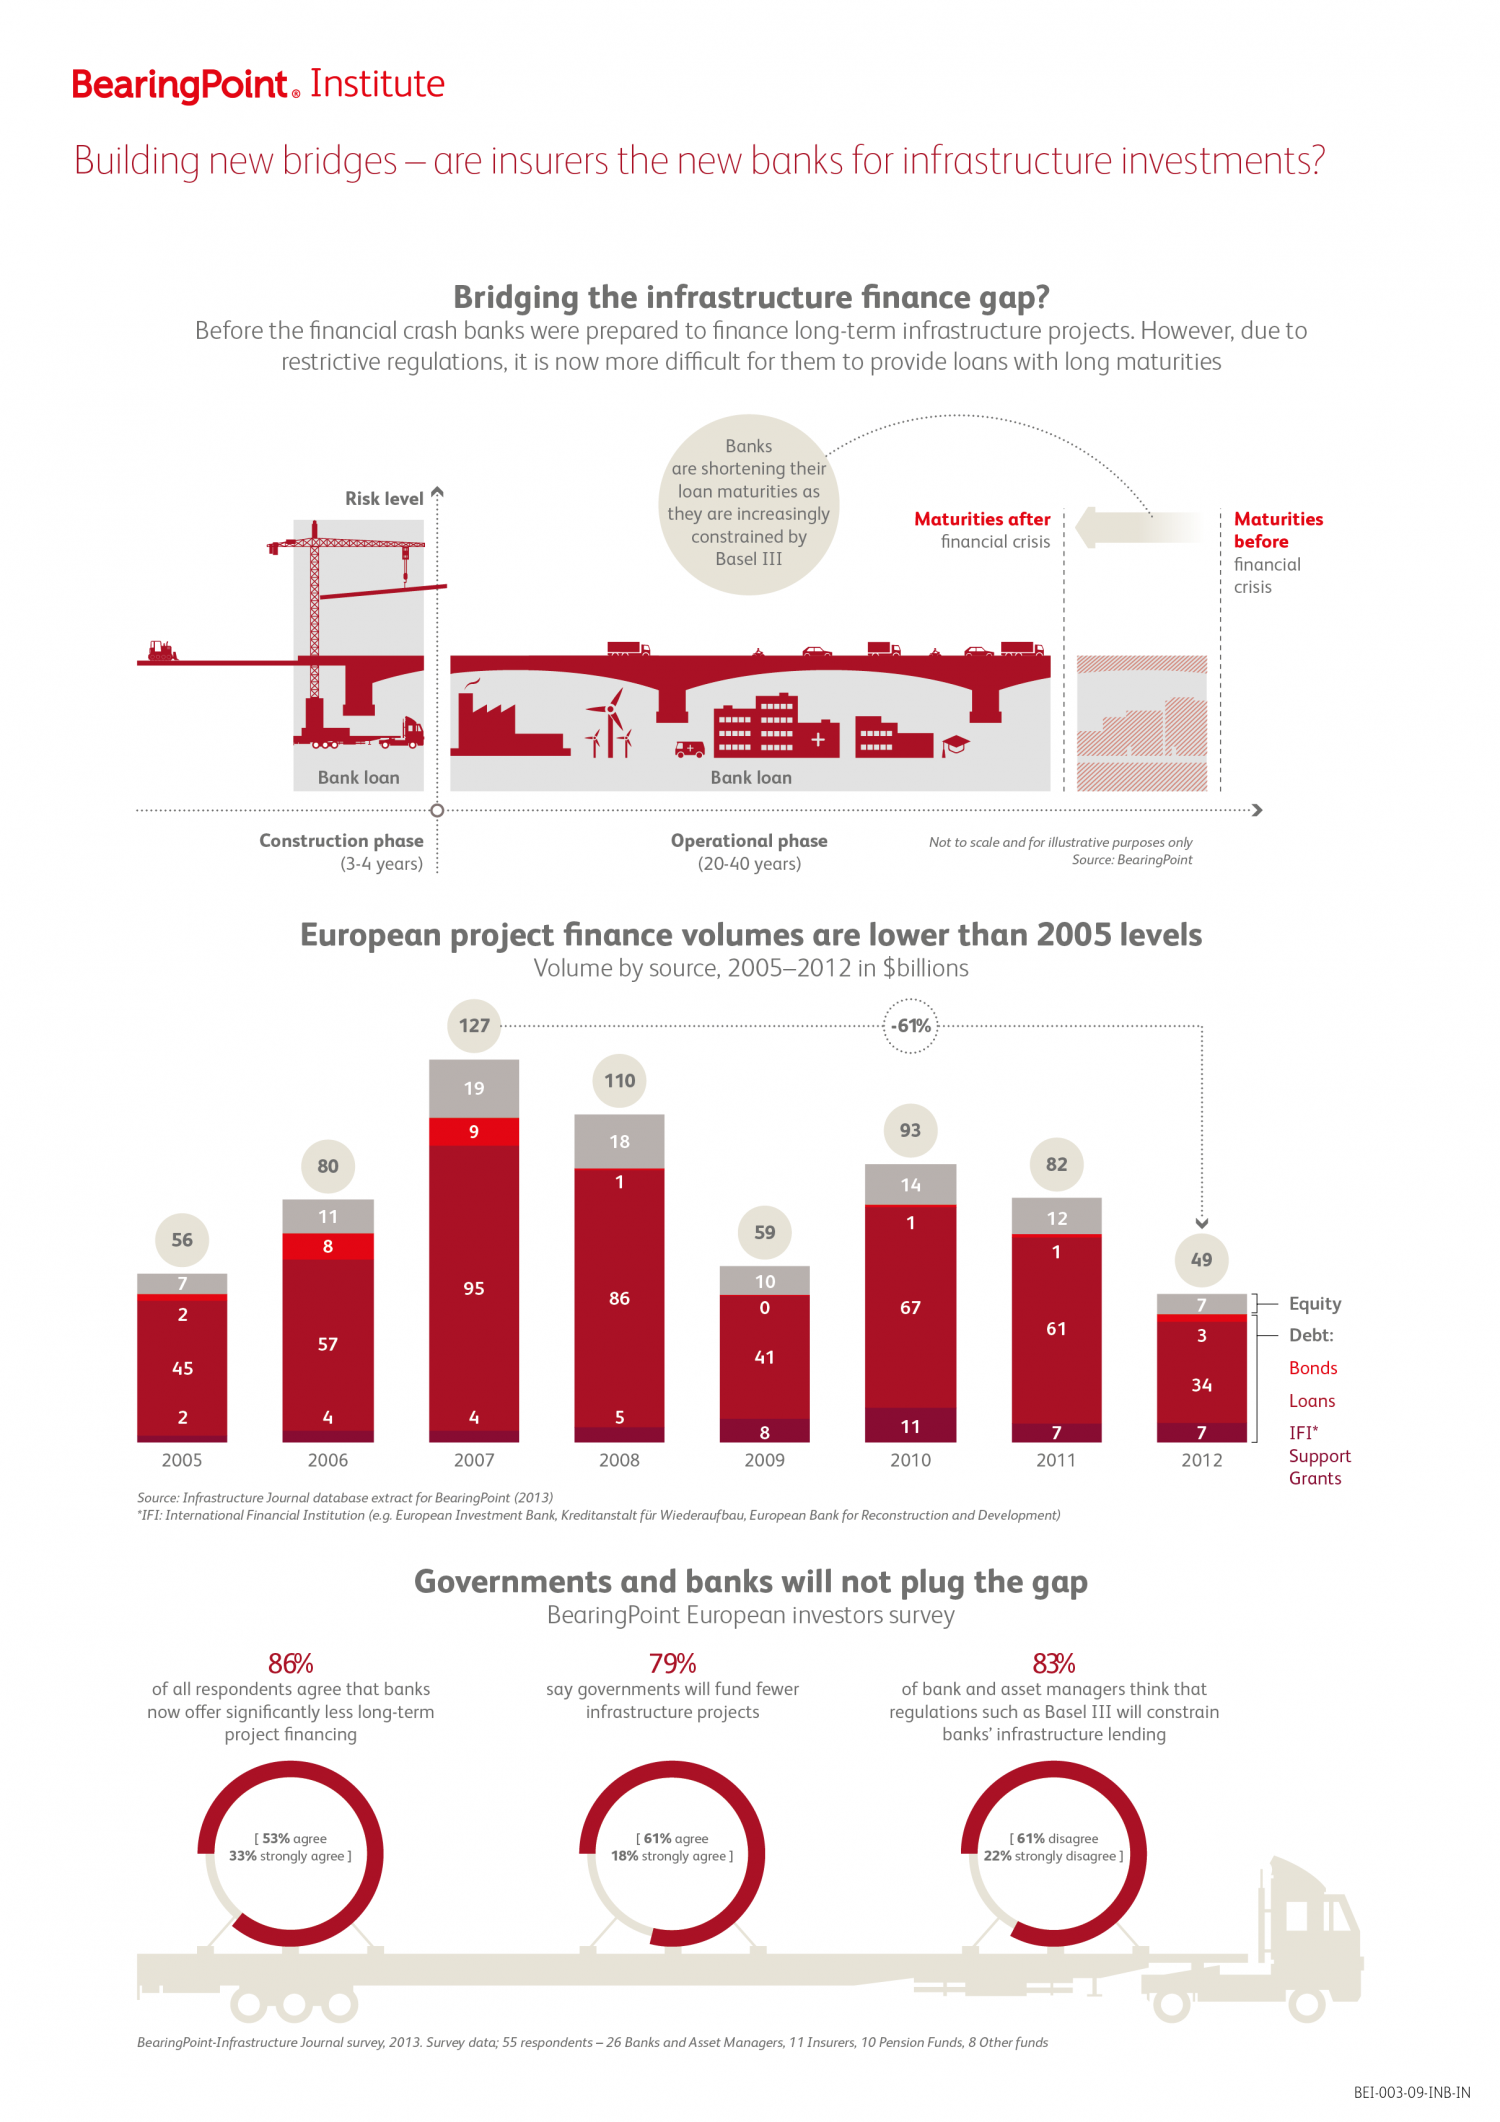 Building new bridges - are insurers the new banks for infrastructure investment? Infographic